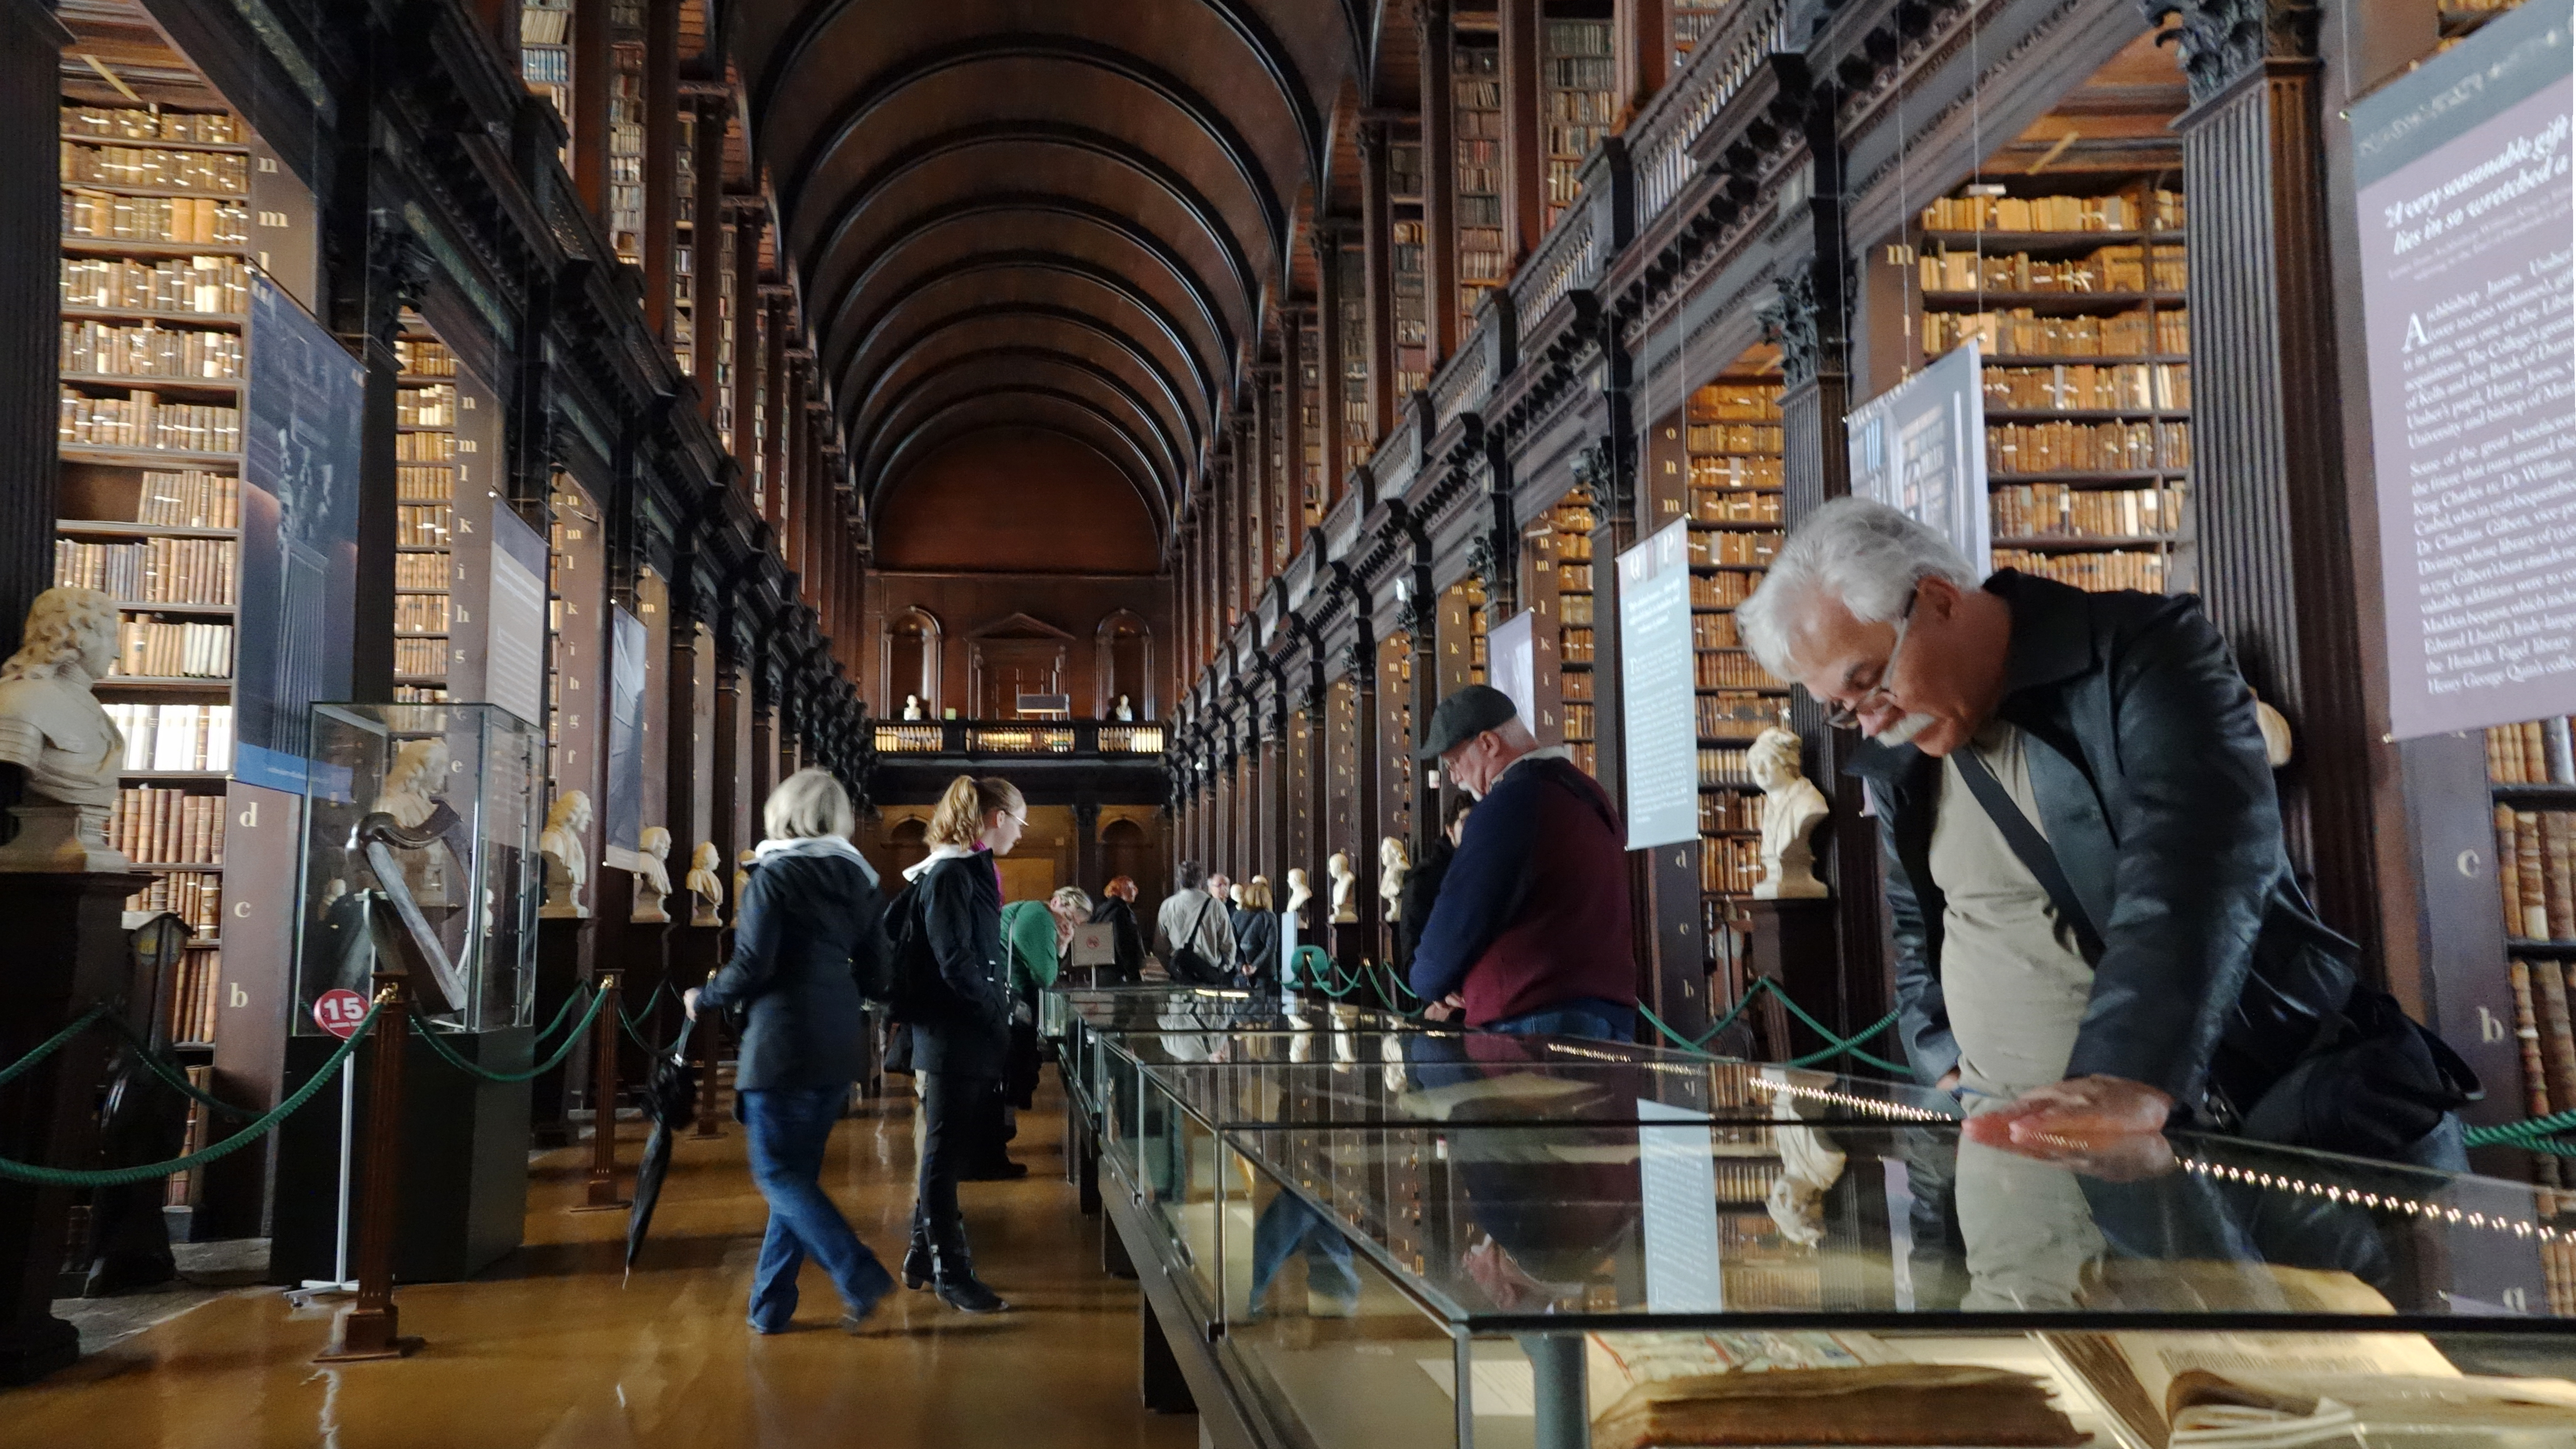 Chester Beatty Library Dublin, Books of Dublin | Travel Between The Pages